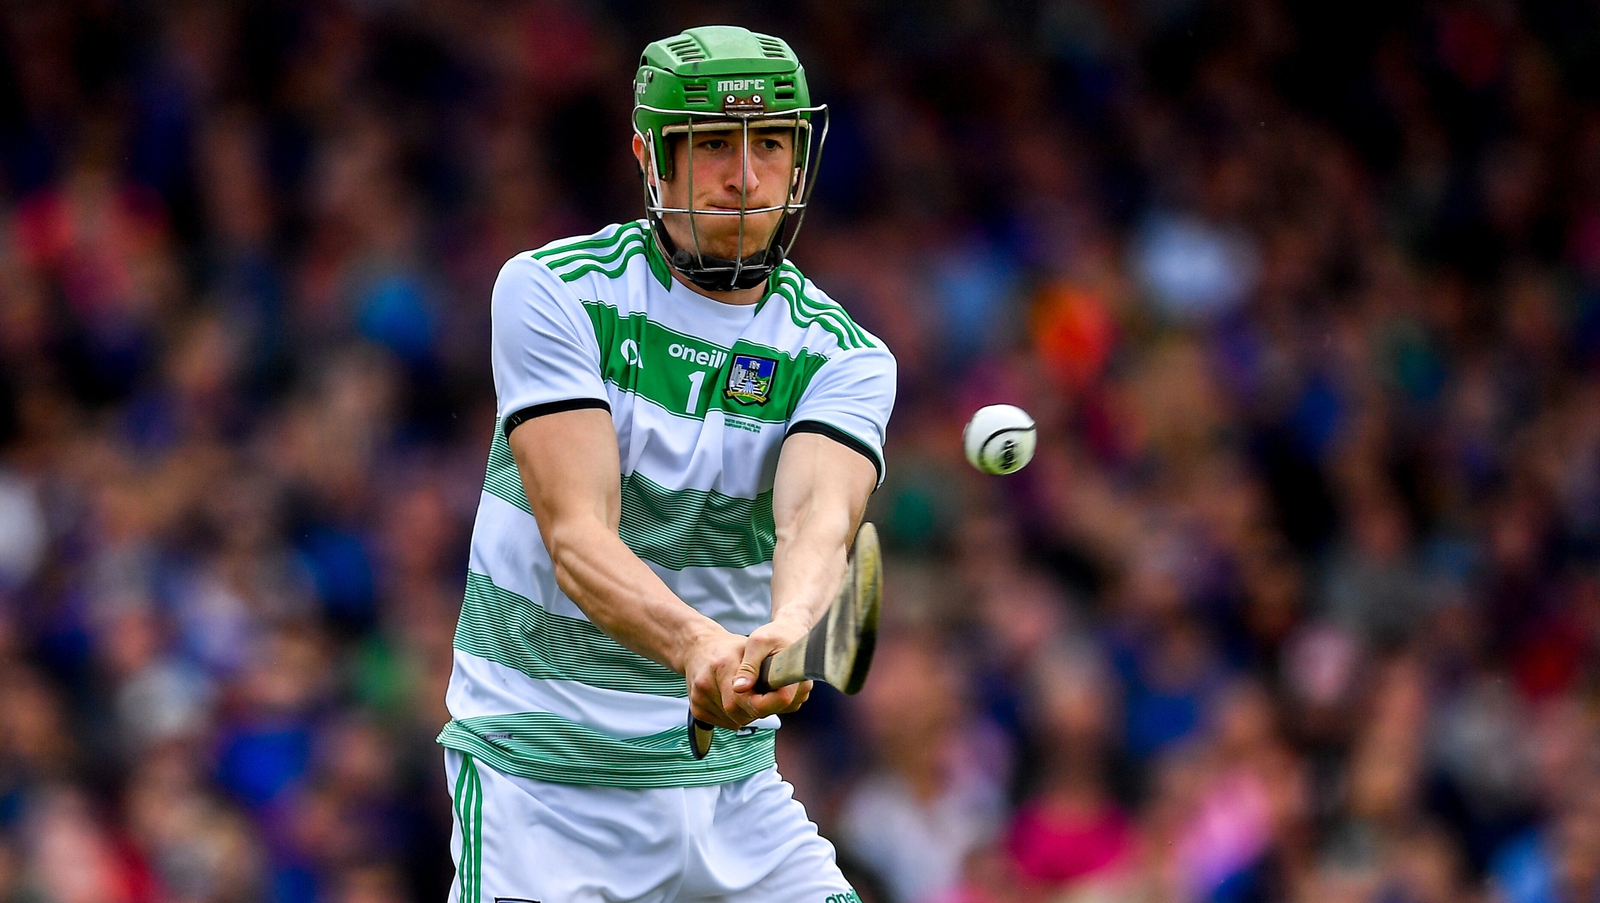 Image - Nickie Quaid made his Limerick debut in 2010 as an outfield player